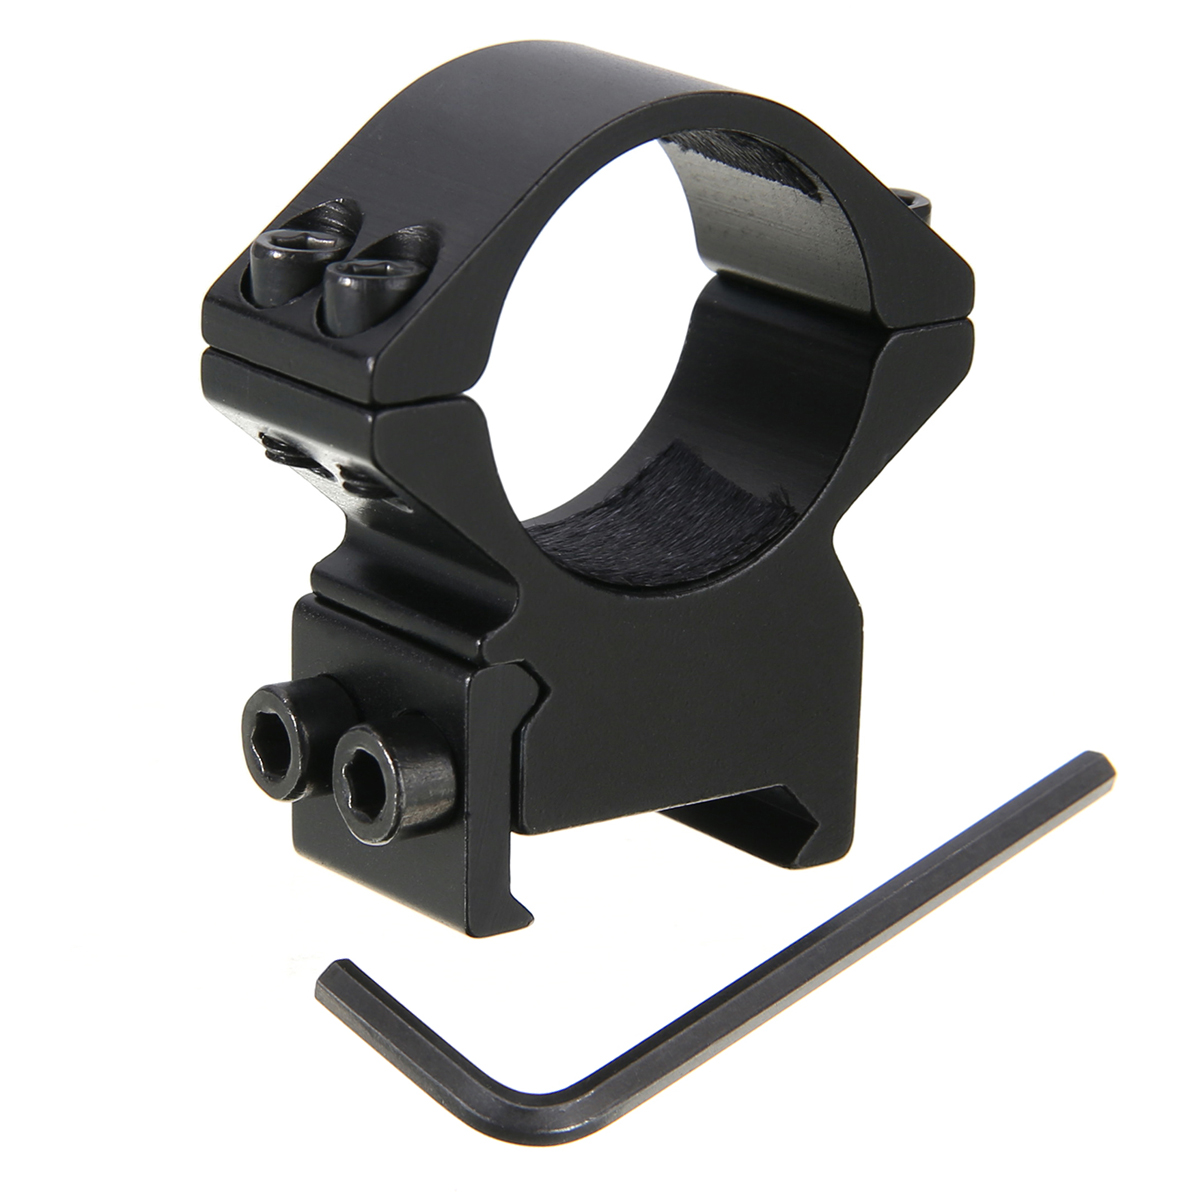 Outdoor Ring Sight Scope Sport Hunting Flashlight Metal Barrel Mount Bracket Black Shock Absorption With Wrench